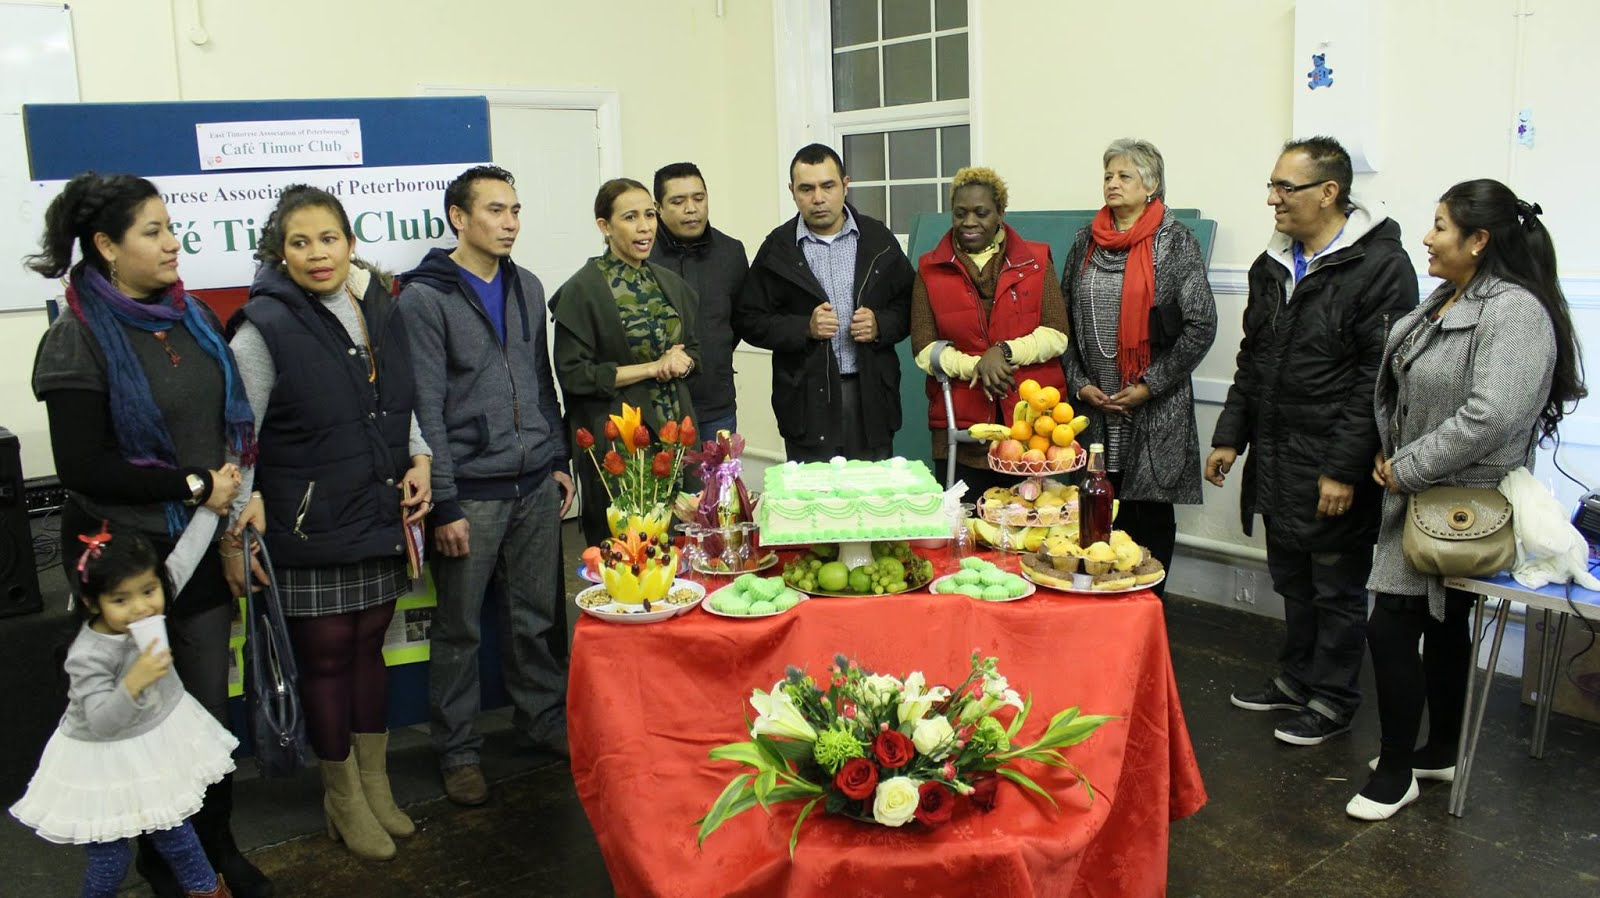 Sixth Anniversary of East Timorese Association of Peterborough